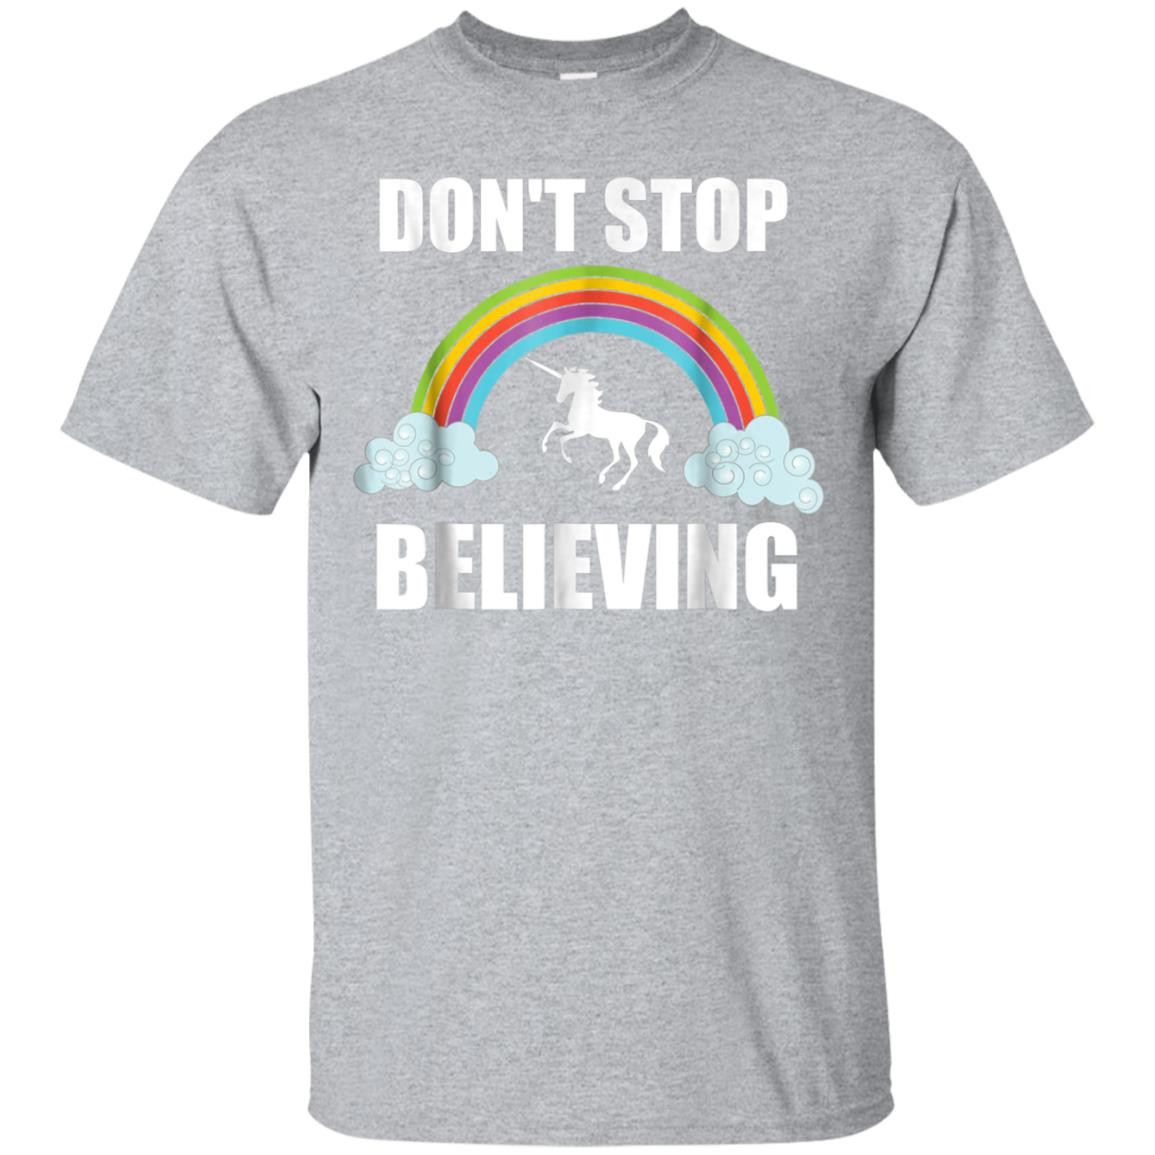 Don't Stop Believing Unicorn T Shirt  Unicorn Lover Gift 99promocode